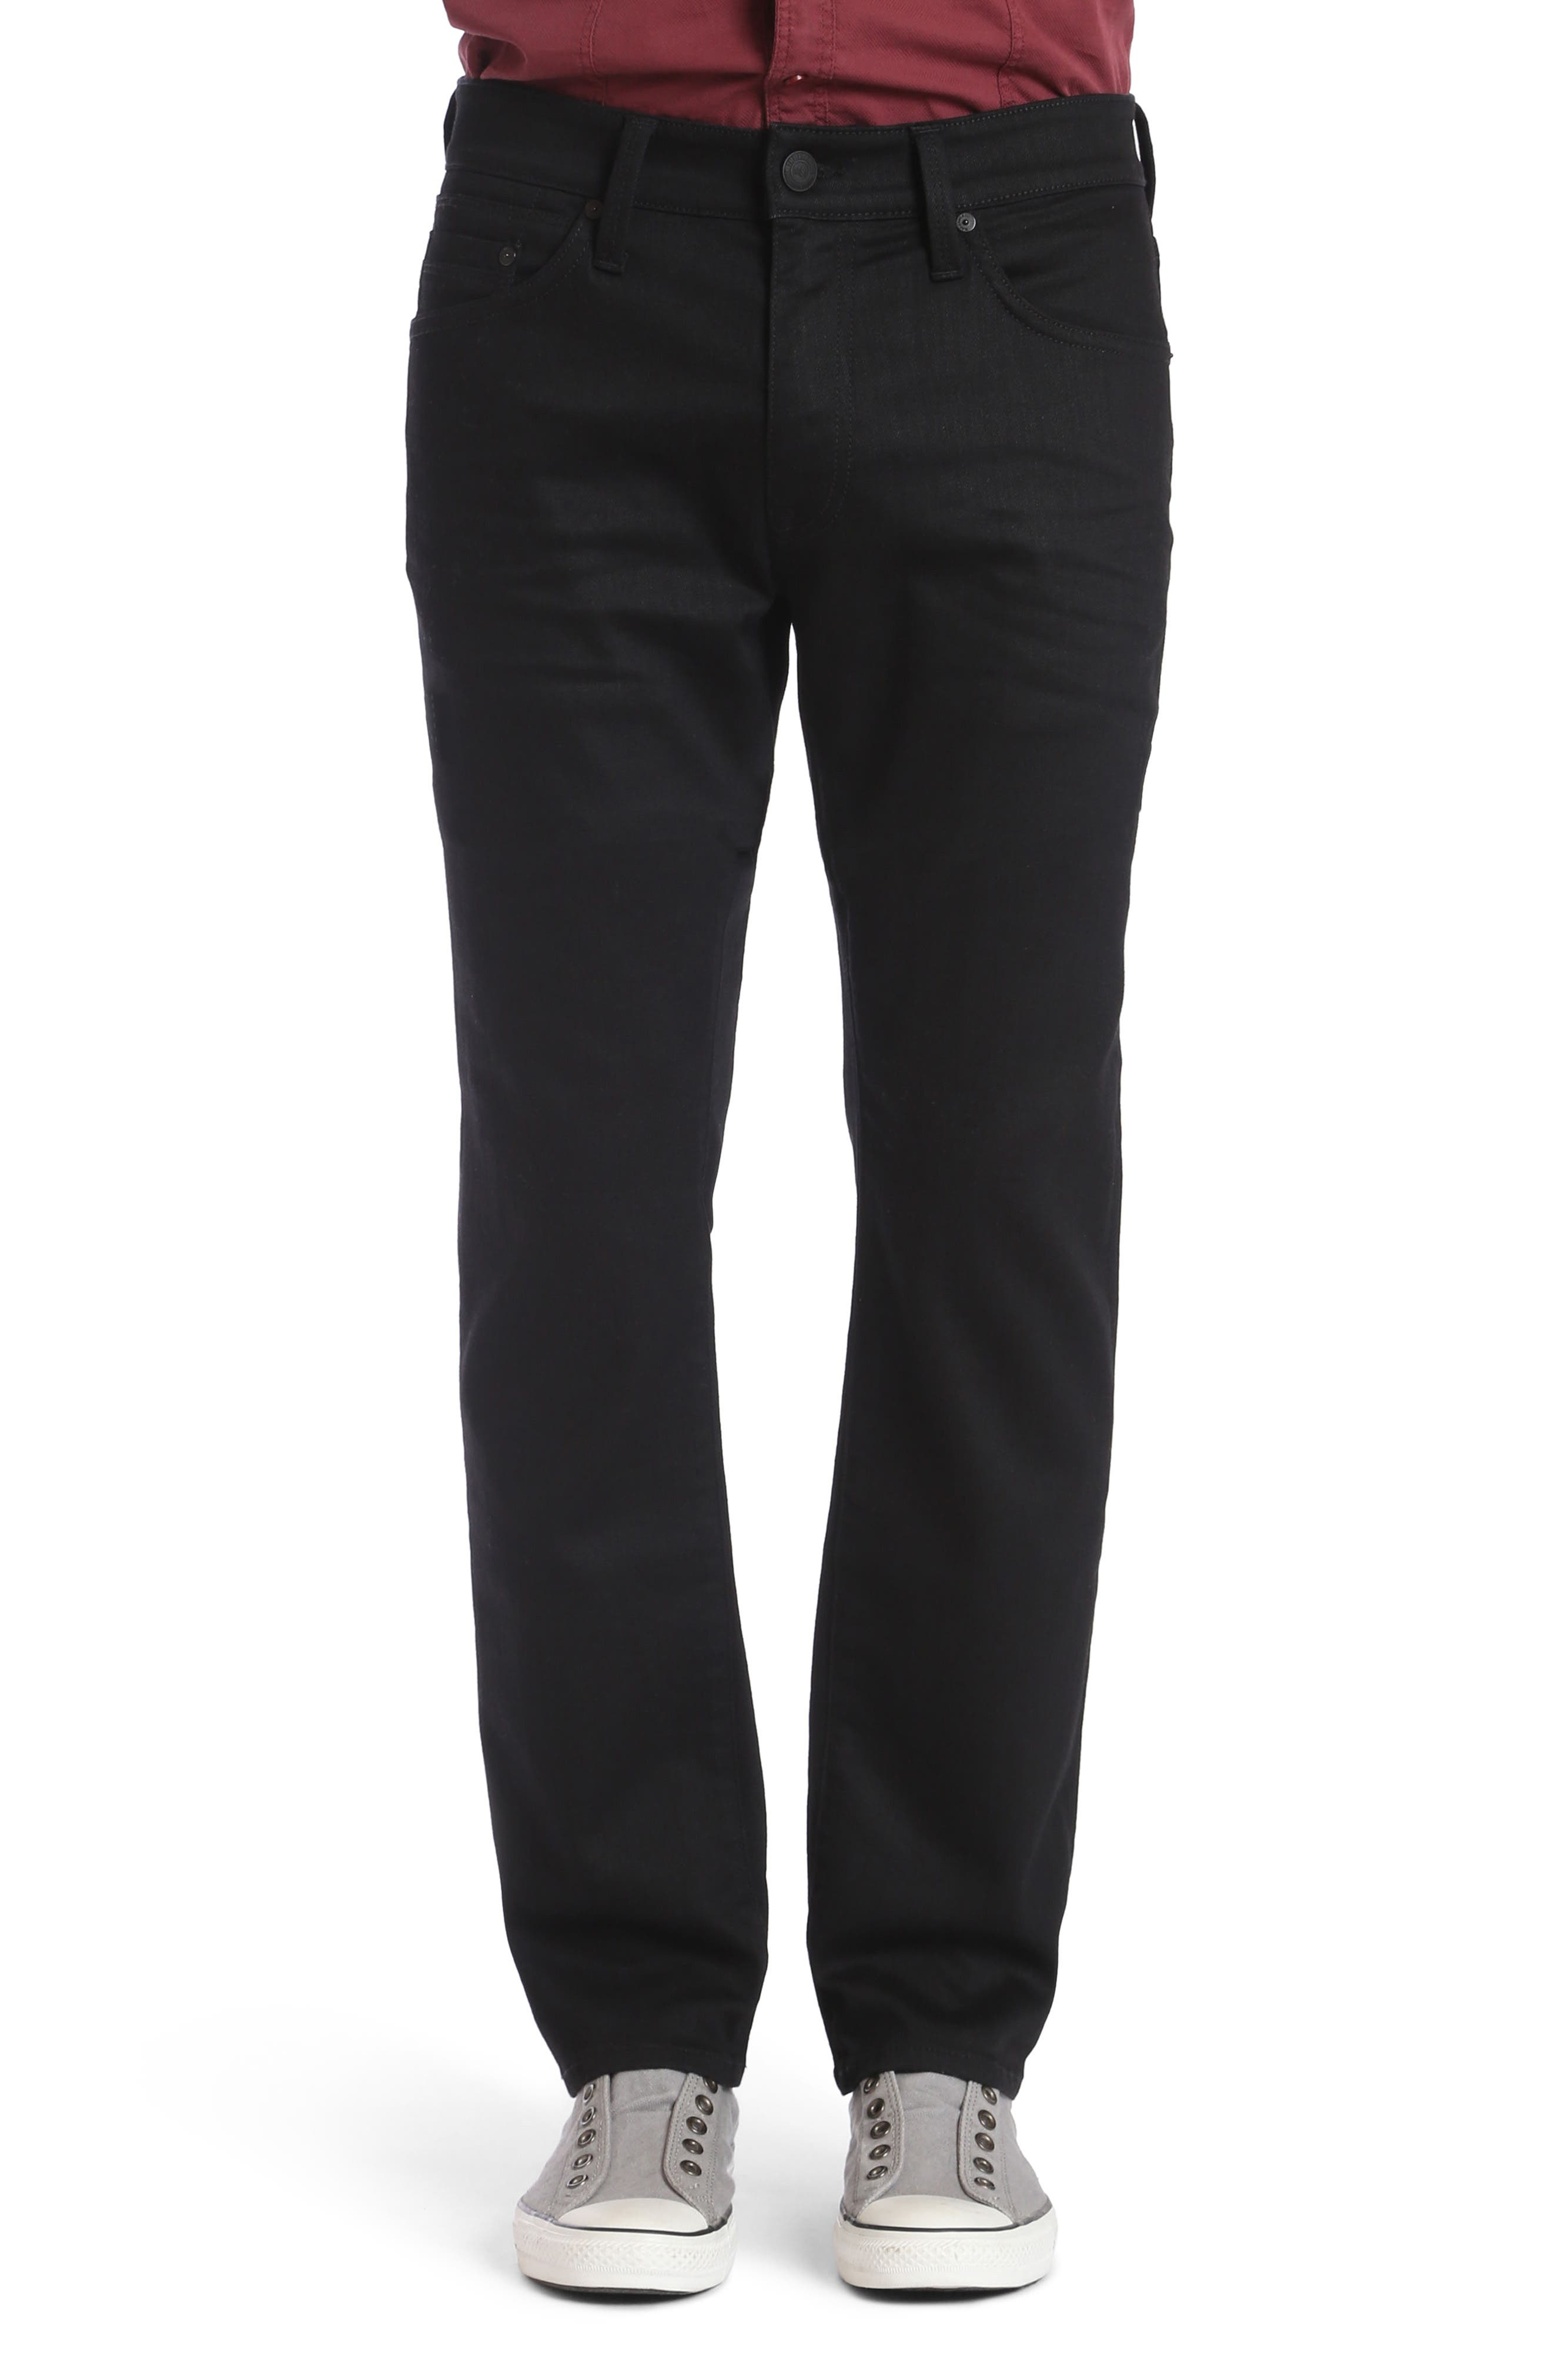 Zach Straight Fit Jeans,                         Main,                         color, Black Brushed Williamsburg